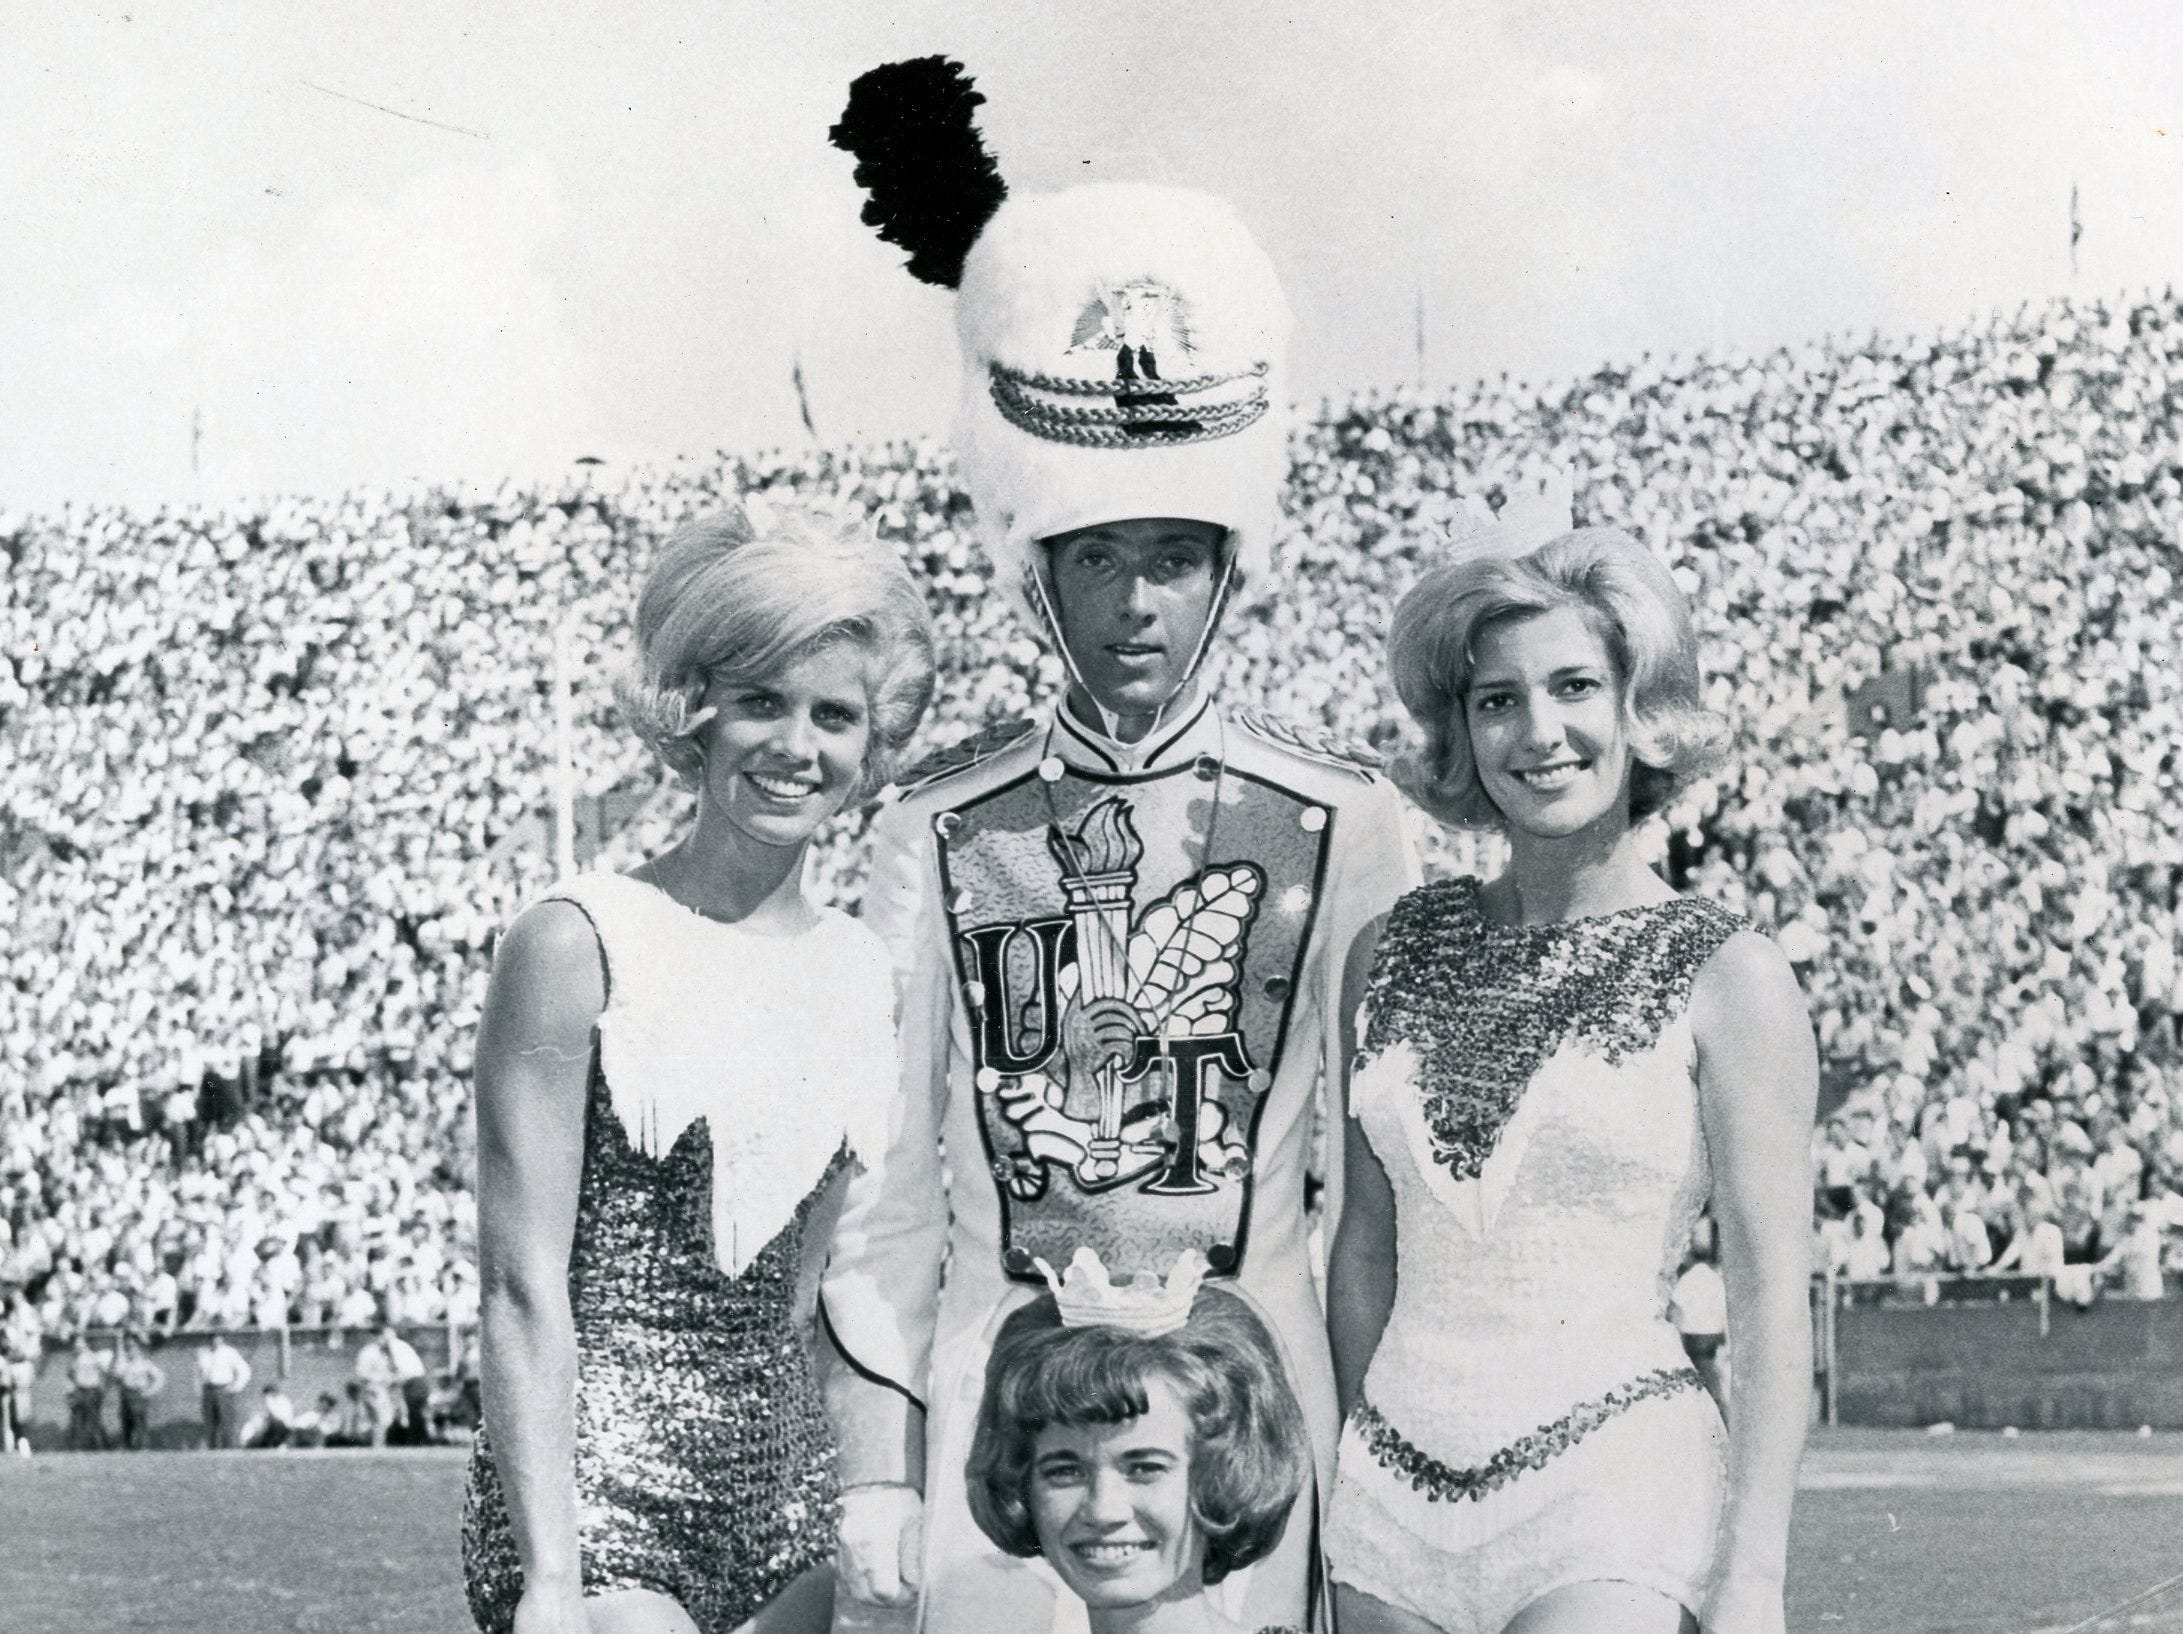 UT majorettes (front) Mary Kay Bettis; (back) Judy Barton and Brenda Flowers with drum major Russell Ramsey (center). September 1965.